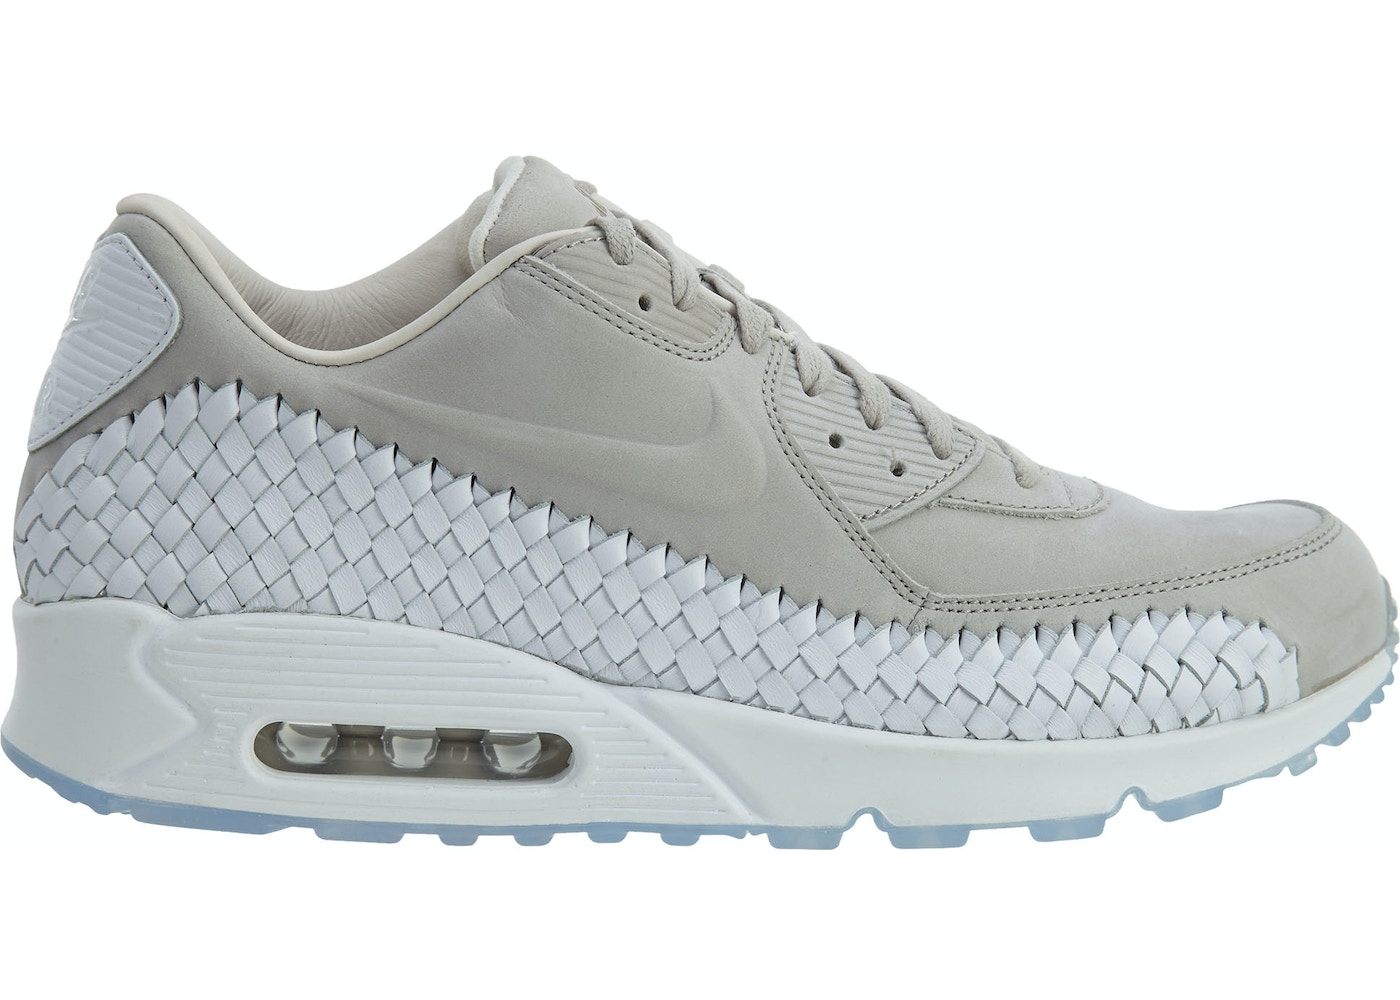 new style 9db29 40ee4 Nike Air Max 90 Shoes - Volatility